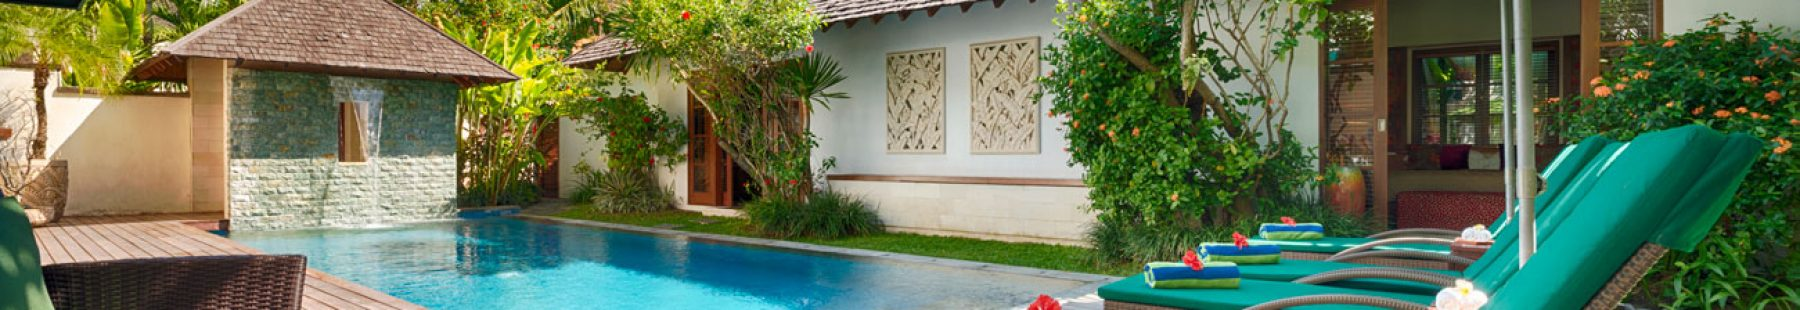 ubud-property-sale-ubud-homes.jpg